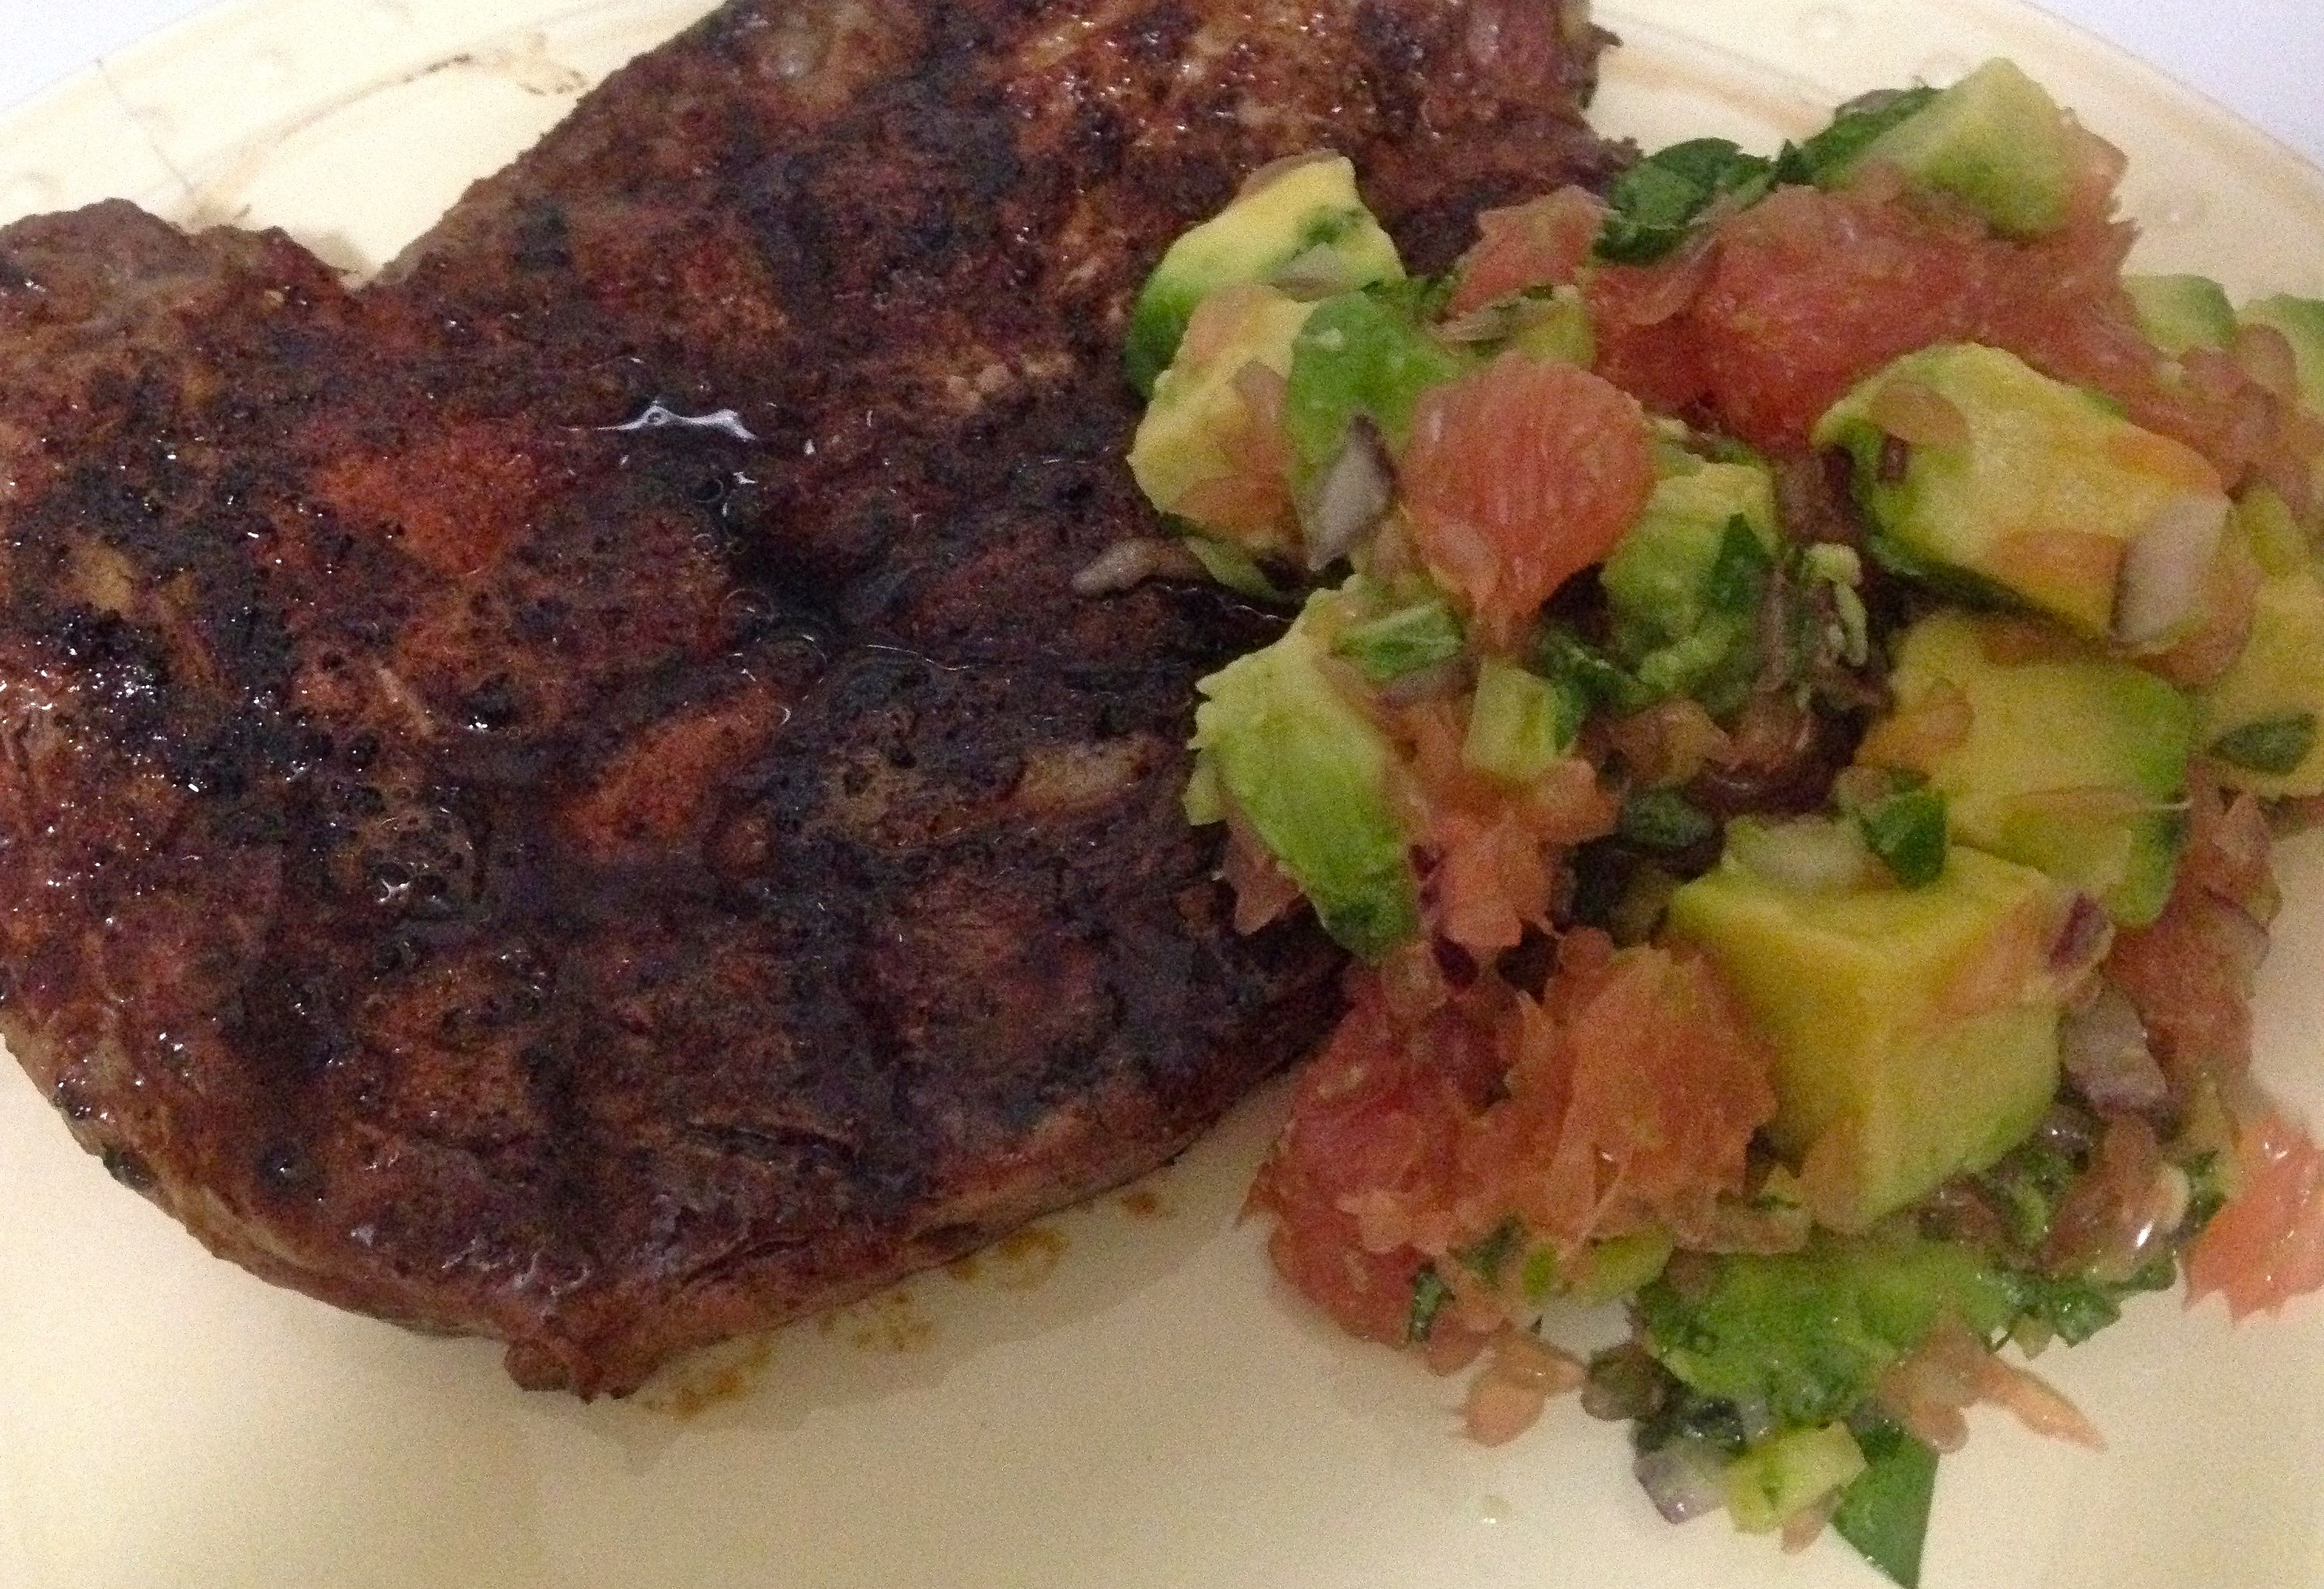 Spice Rubbed Steak w/ Avocado & Grapefruit Salsa